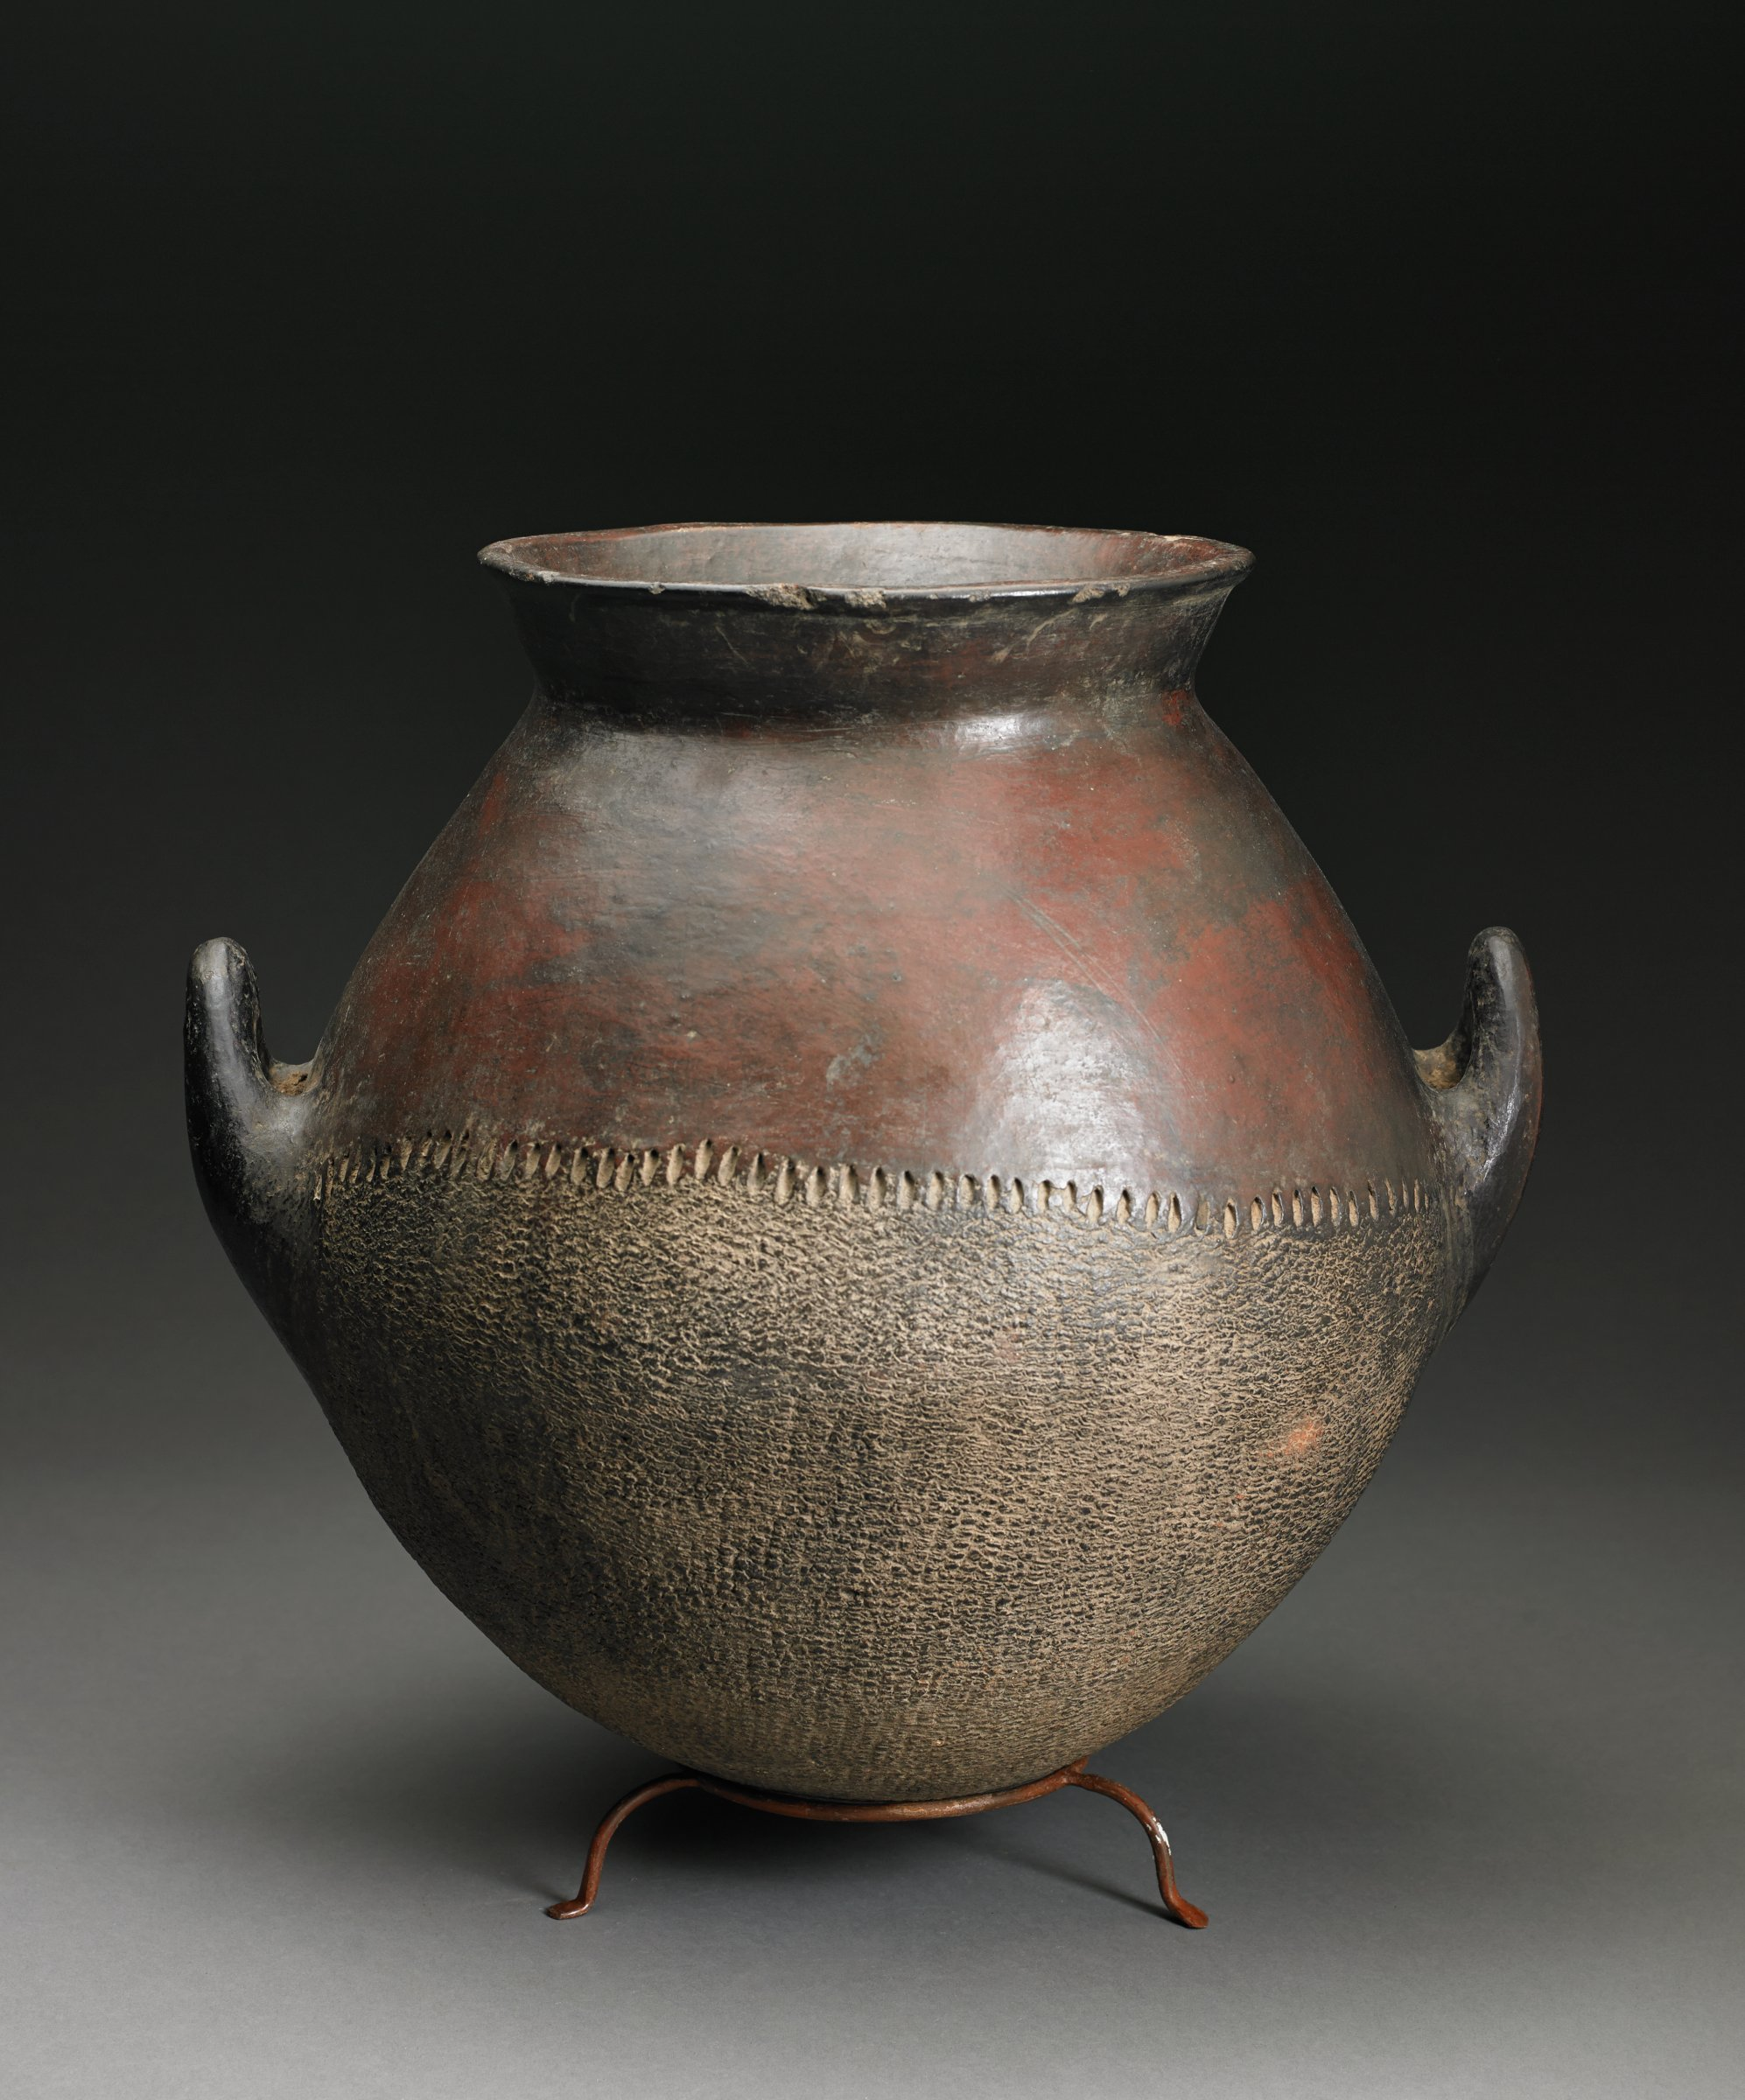 Brown, ovoid vessel narrows at neck and has everted rim and lug handles; bottom half of vessel has overall roulette texture and matte, buff-colored surface and top half of vessel is glossy dark brown.